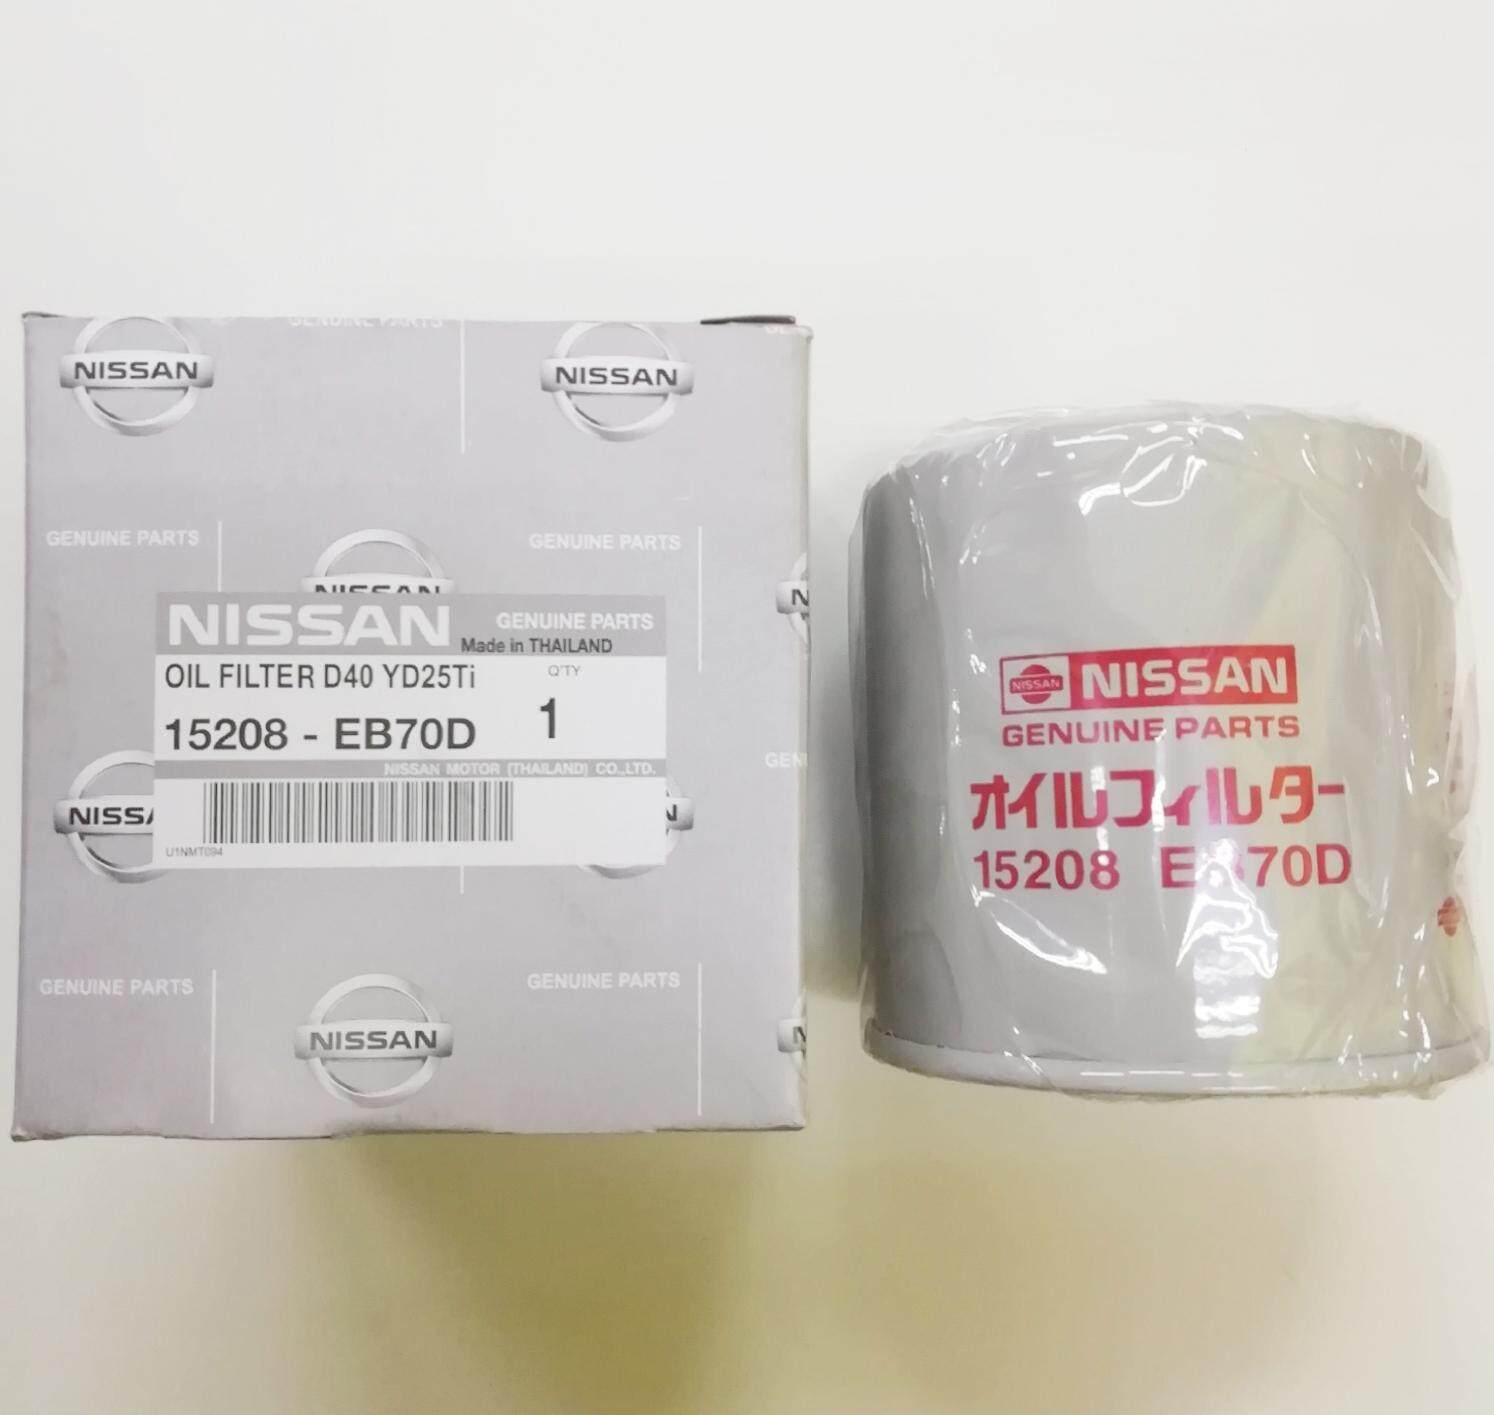 Nissan Auto Parts Spares Price In Malaysia Best 350z Fuse Box Diagram Oil Filter Navara D40 Np300